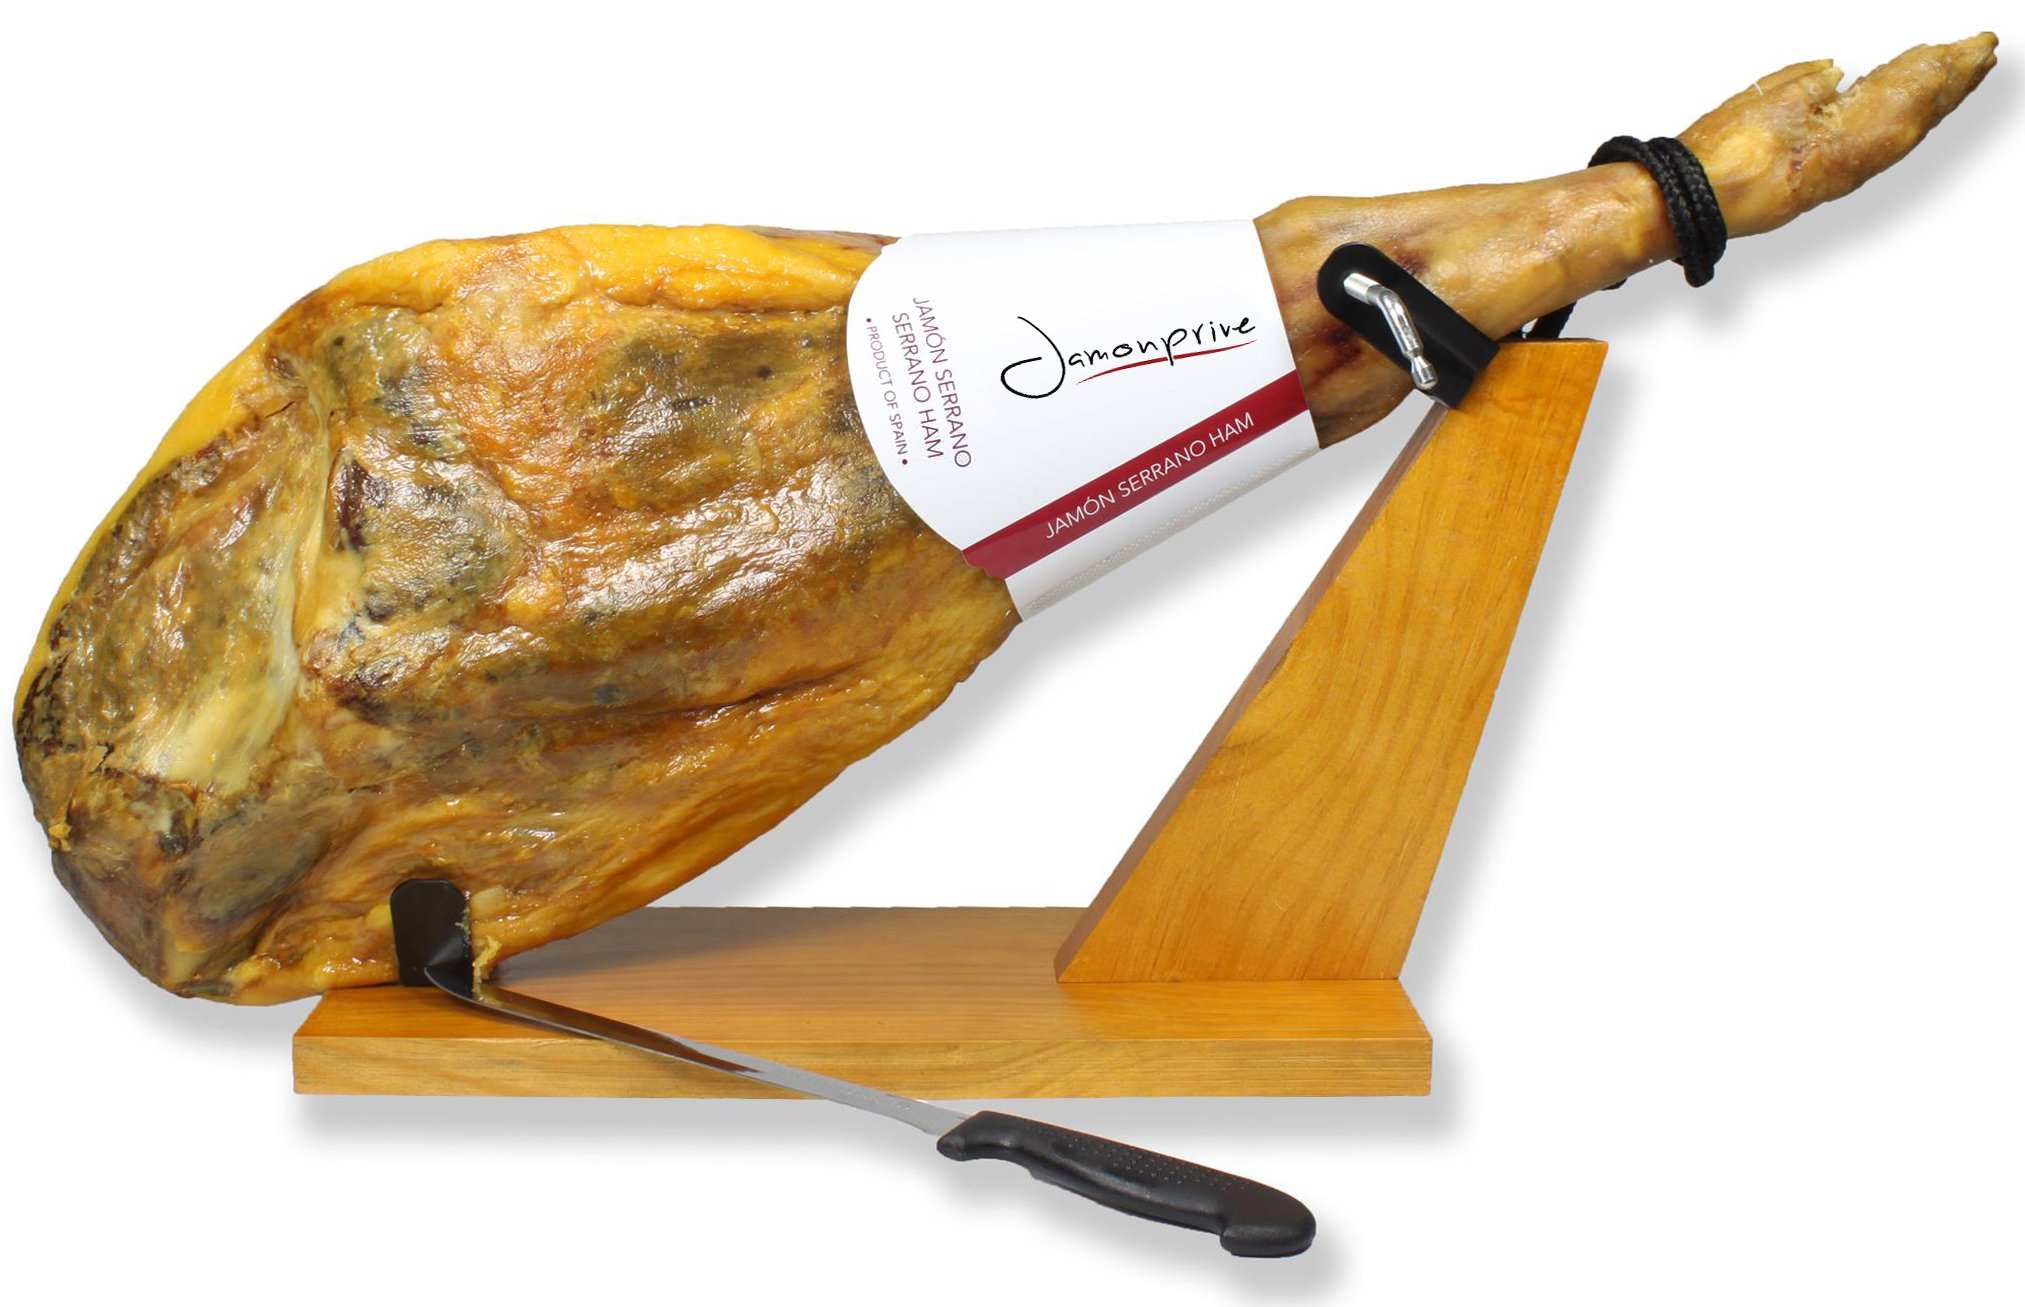 Serrano Ham Bone in from Spain 14.7-17 lb + Ham Stand + Knife | Cured Spanish Jamon Made with Mediterranean Sea Salt & NO Nitrates or Nitrites by Jamonprive (Image #2)